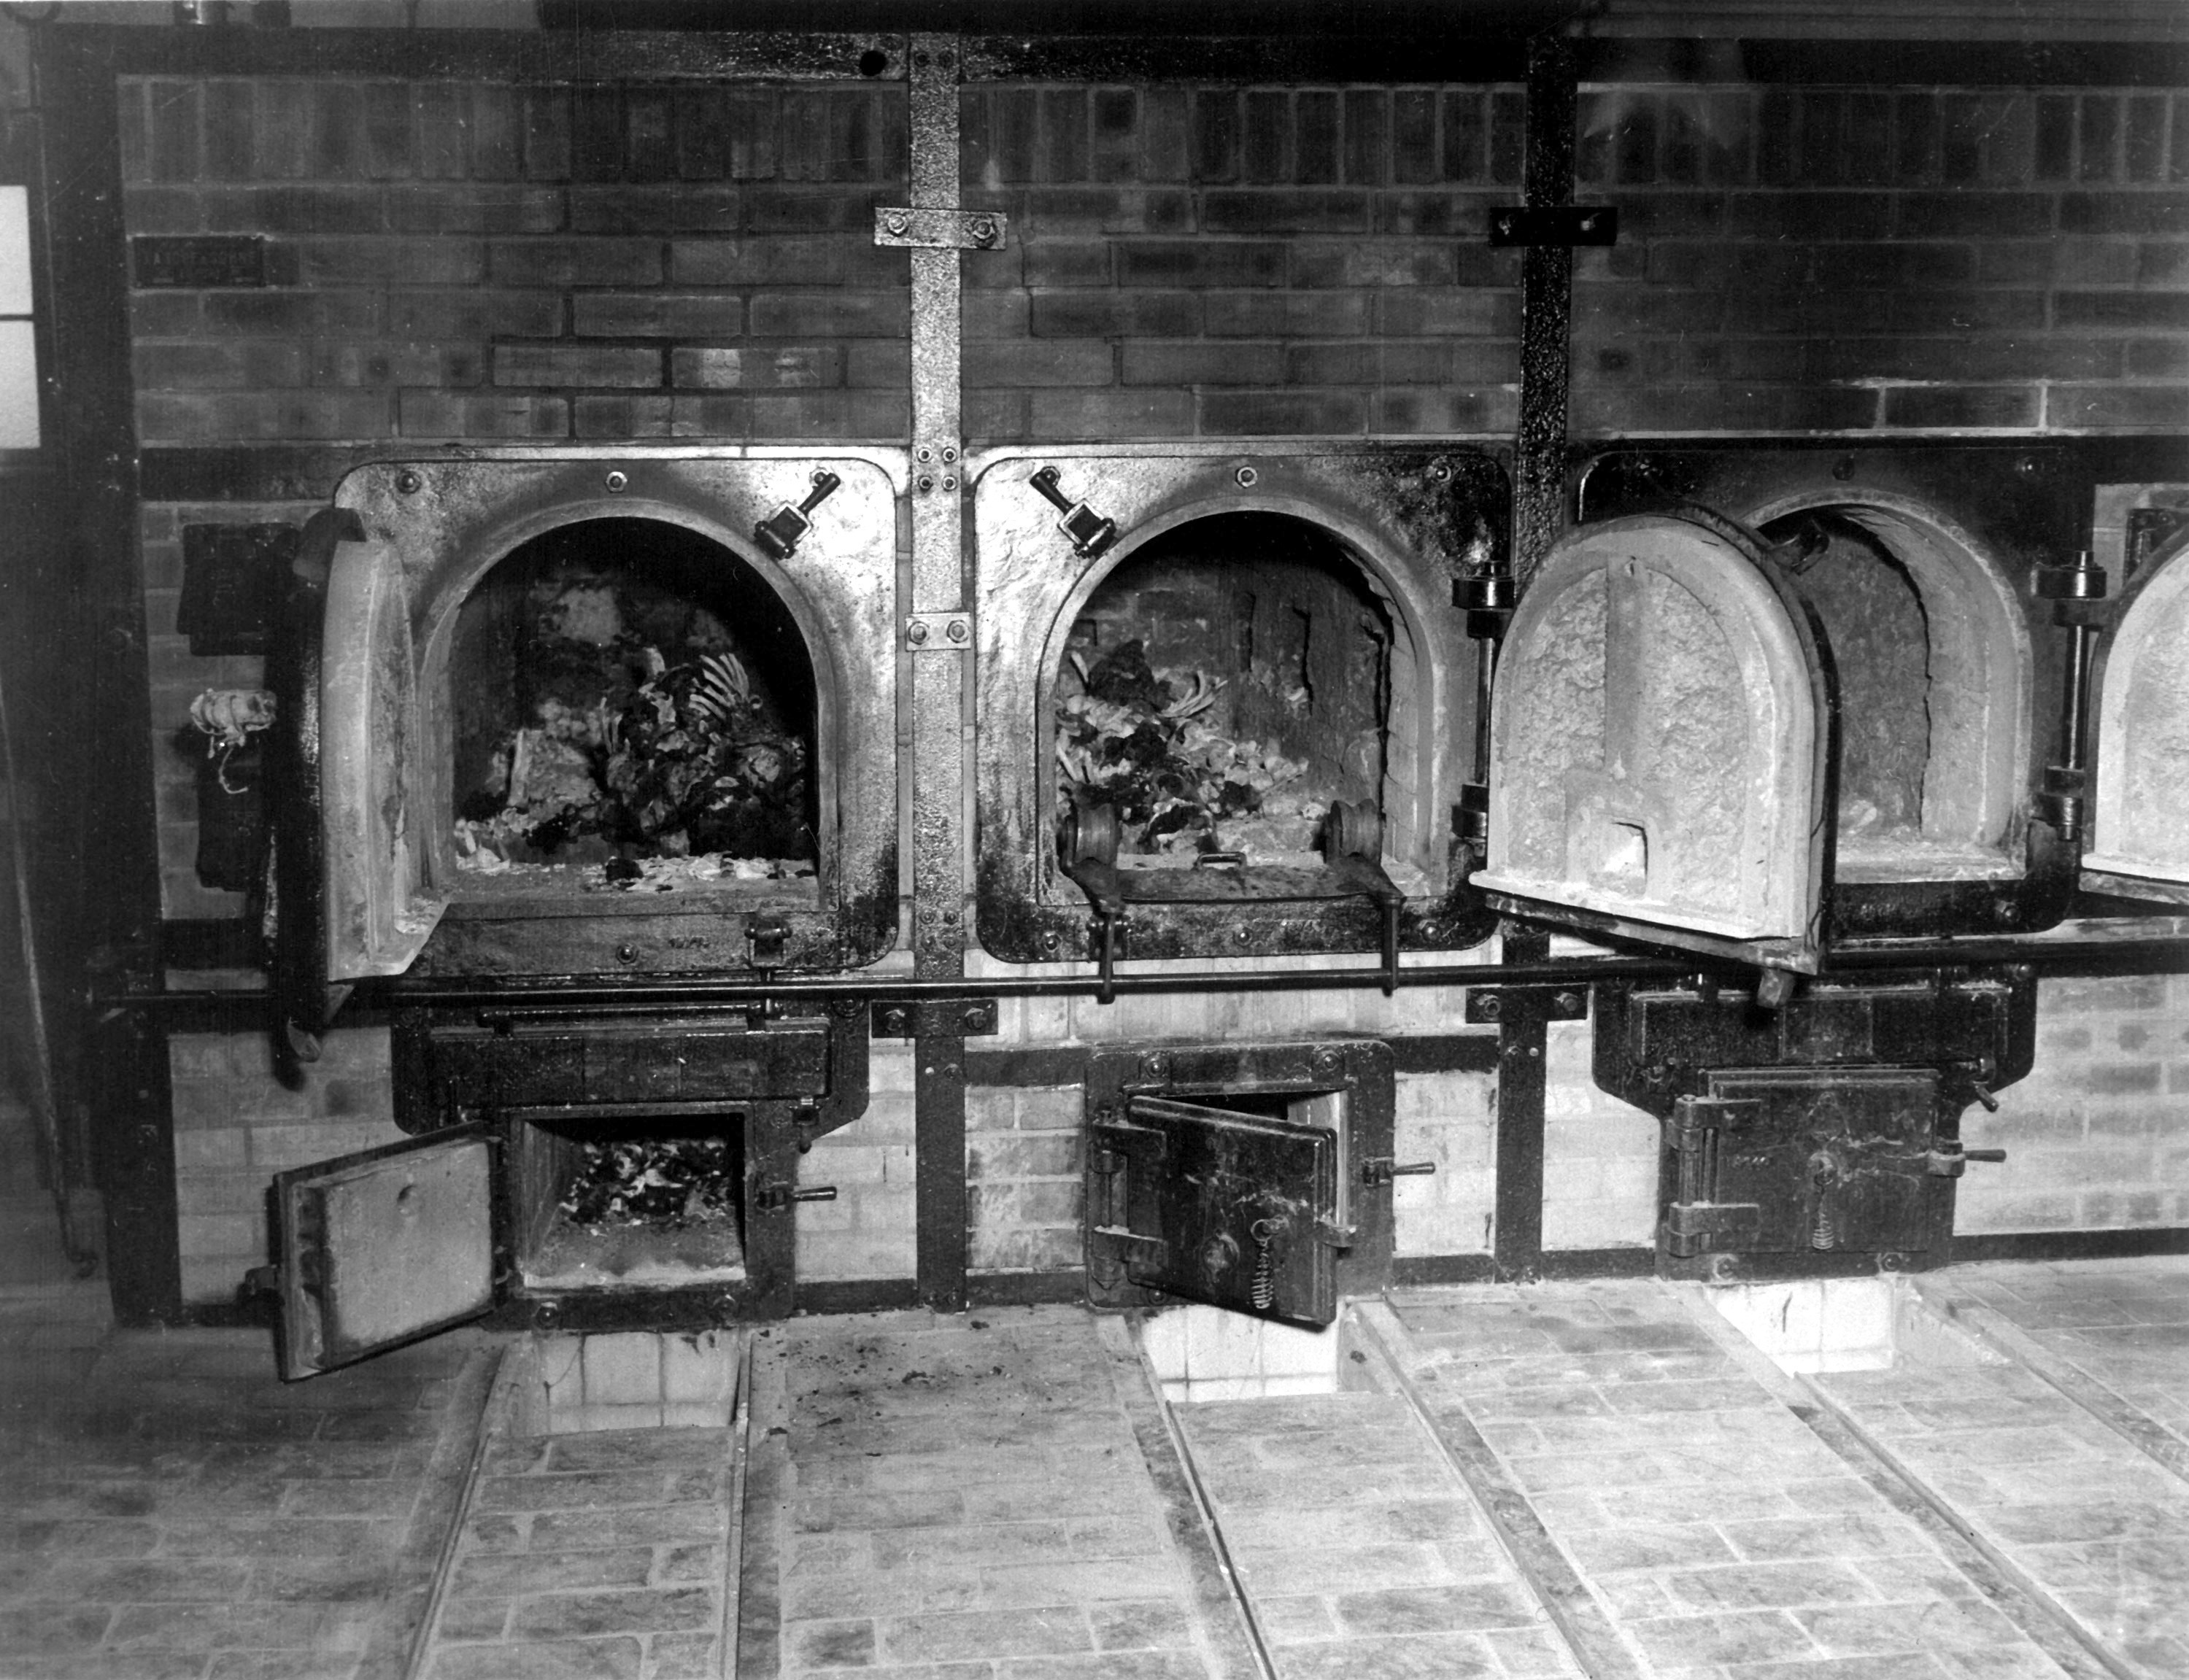 Bones of anti-Nazi German women still are in the crematoriums in the German concentration camp at Weimar, Germany, taken by the 3rd U.S. Army.  Prisoners of all nationalities were tortured and killed.  April 14, 1945.  Pfc. W. Chichersky.  (Army) NARA FILE #:  111-SC-203461 WAR & CONFLICT BOOK #:  1122